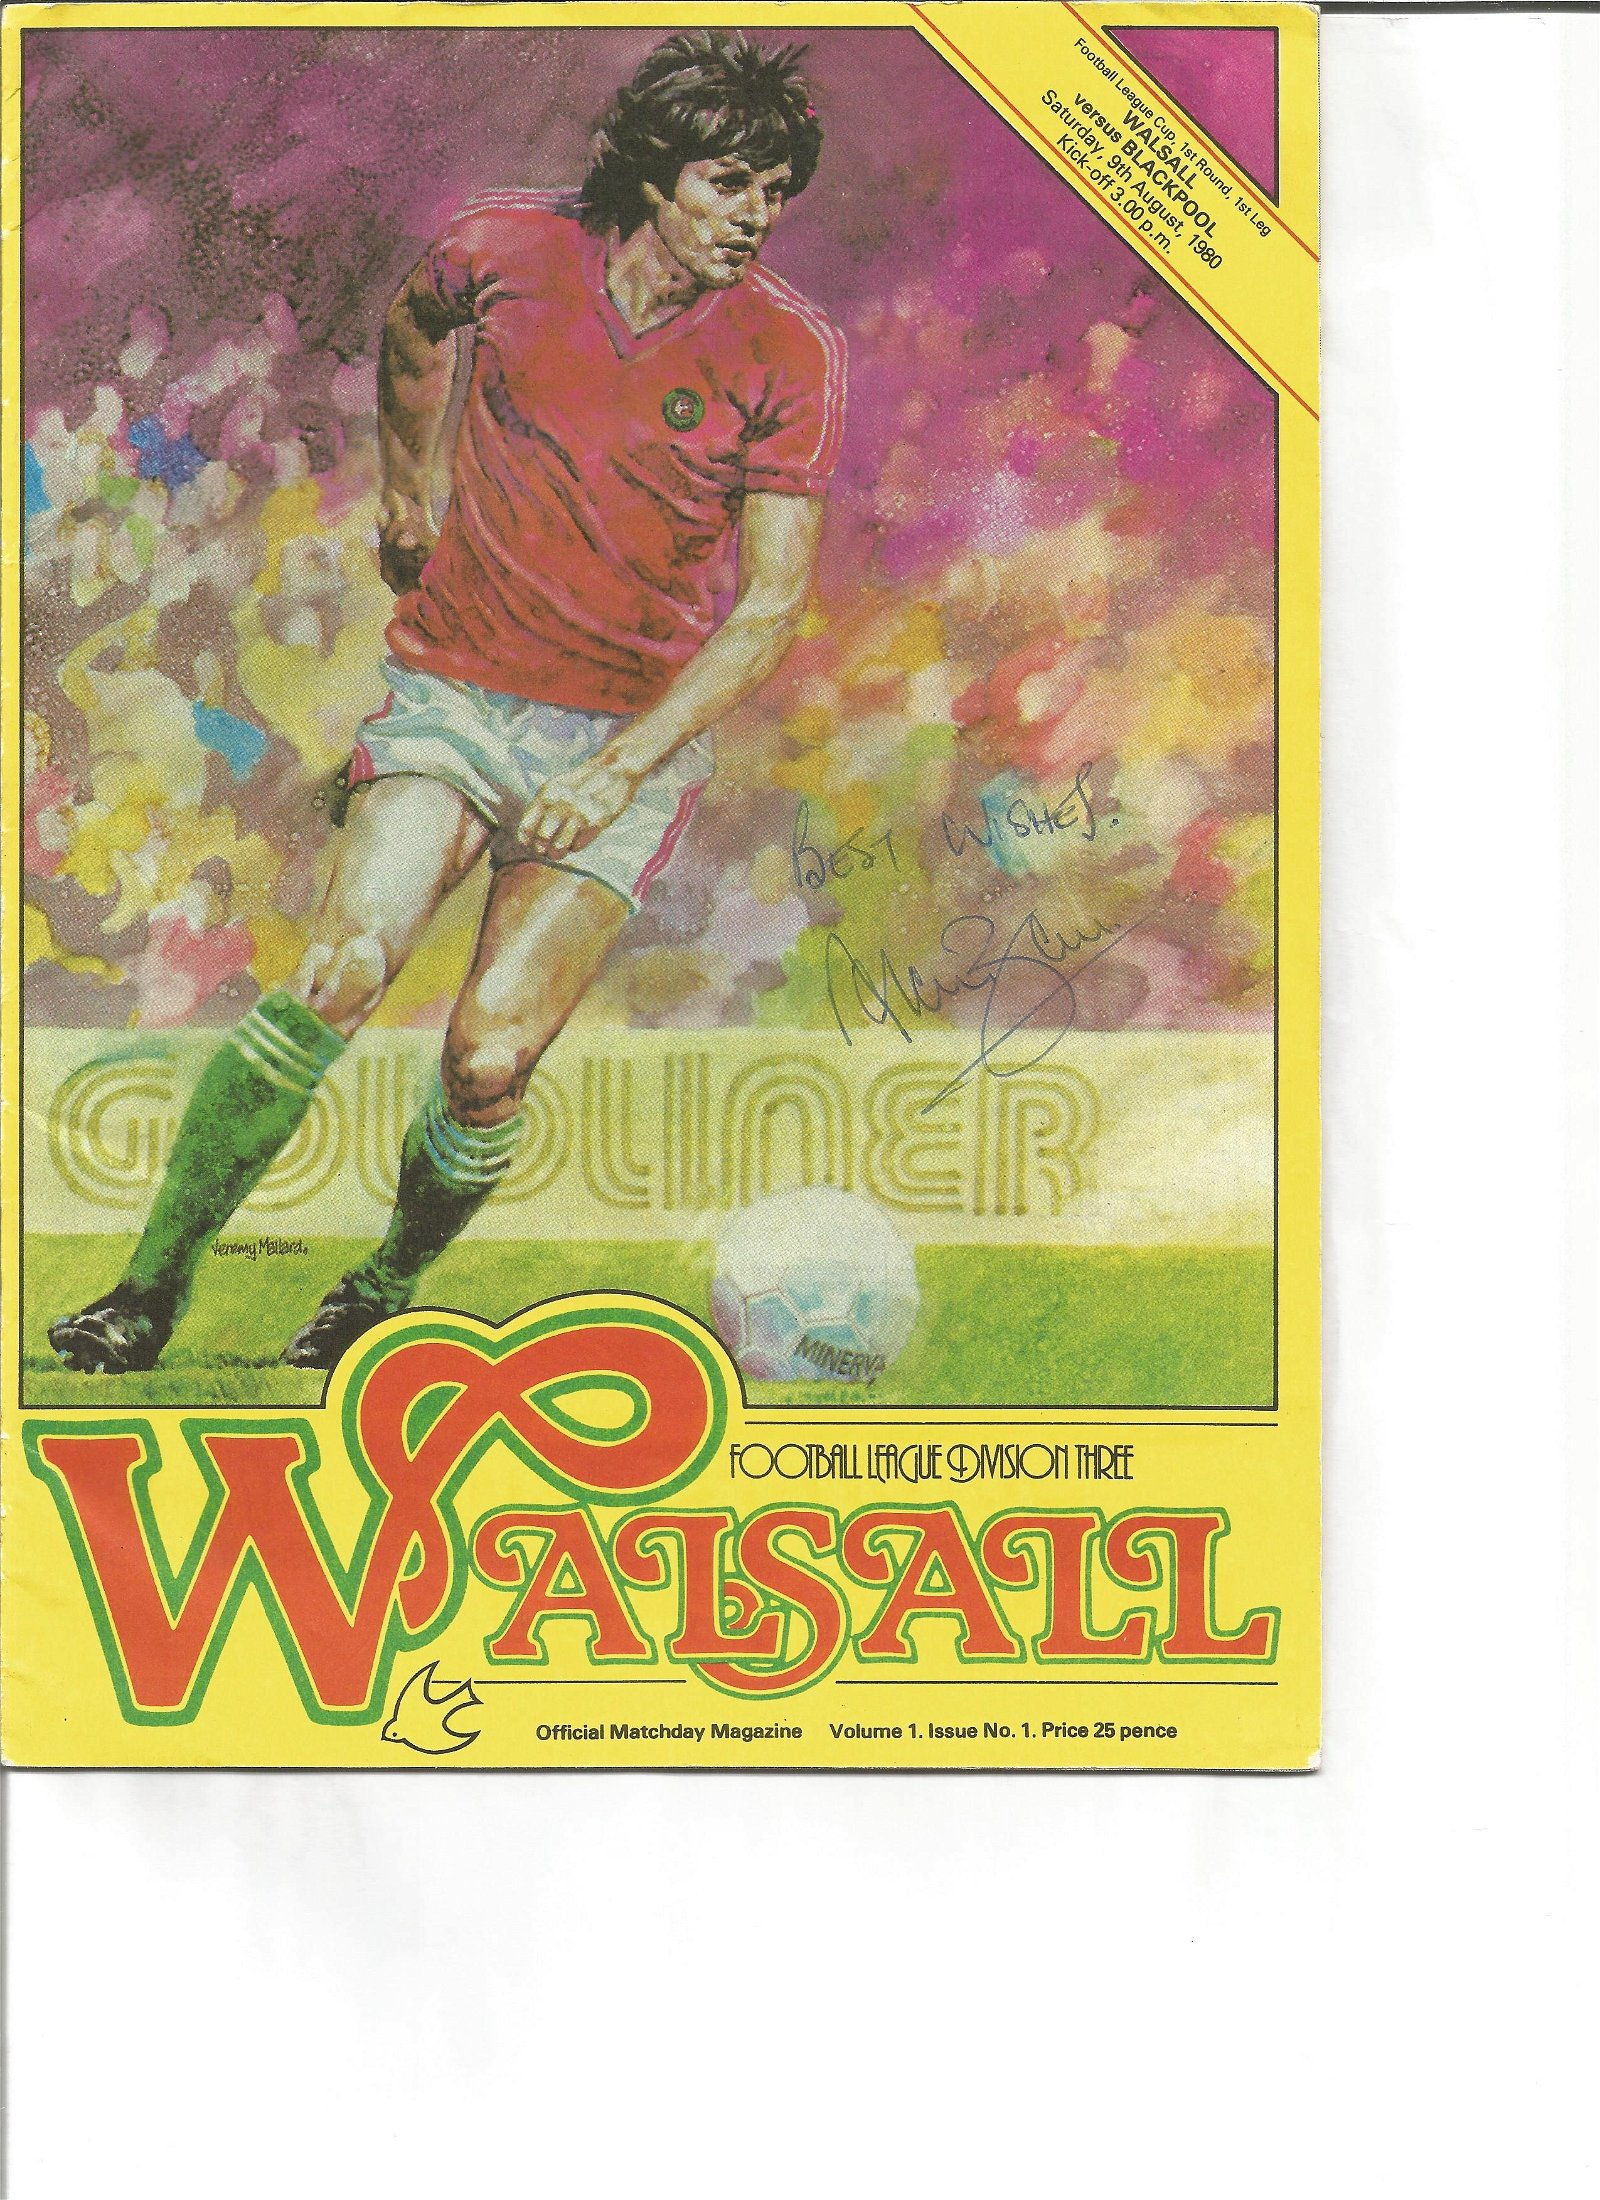 Alan Ball signed Walsall matchday programme, Signed on